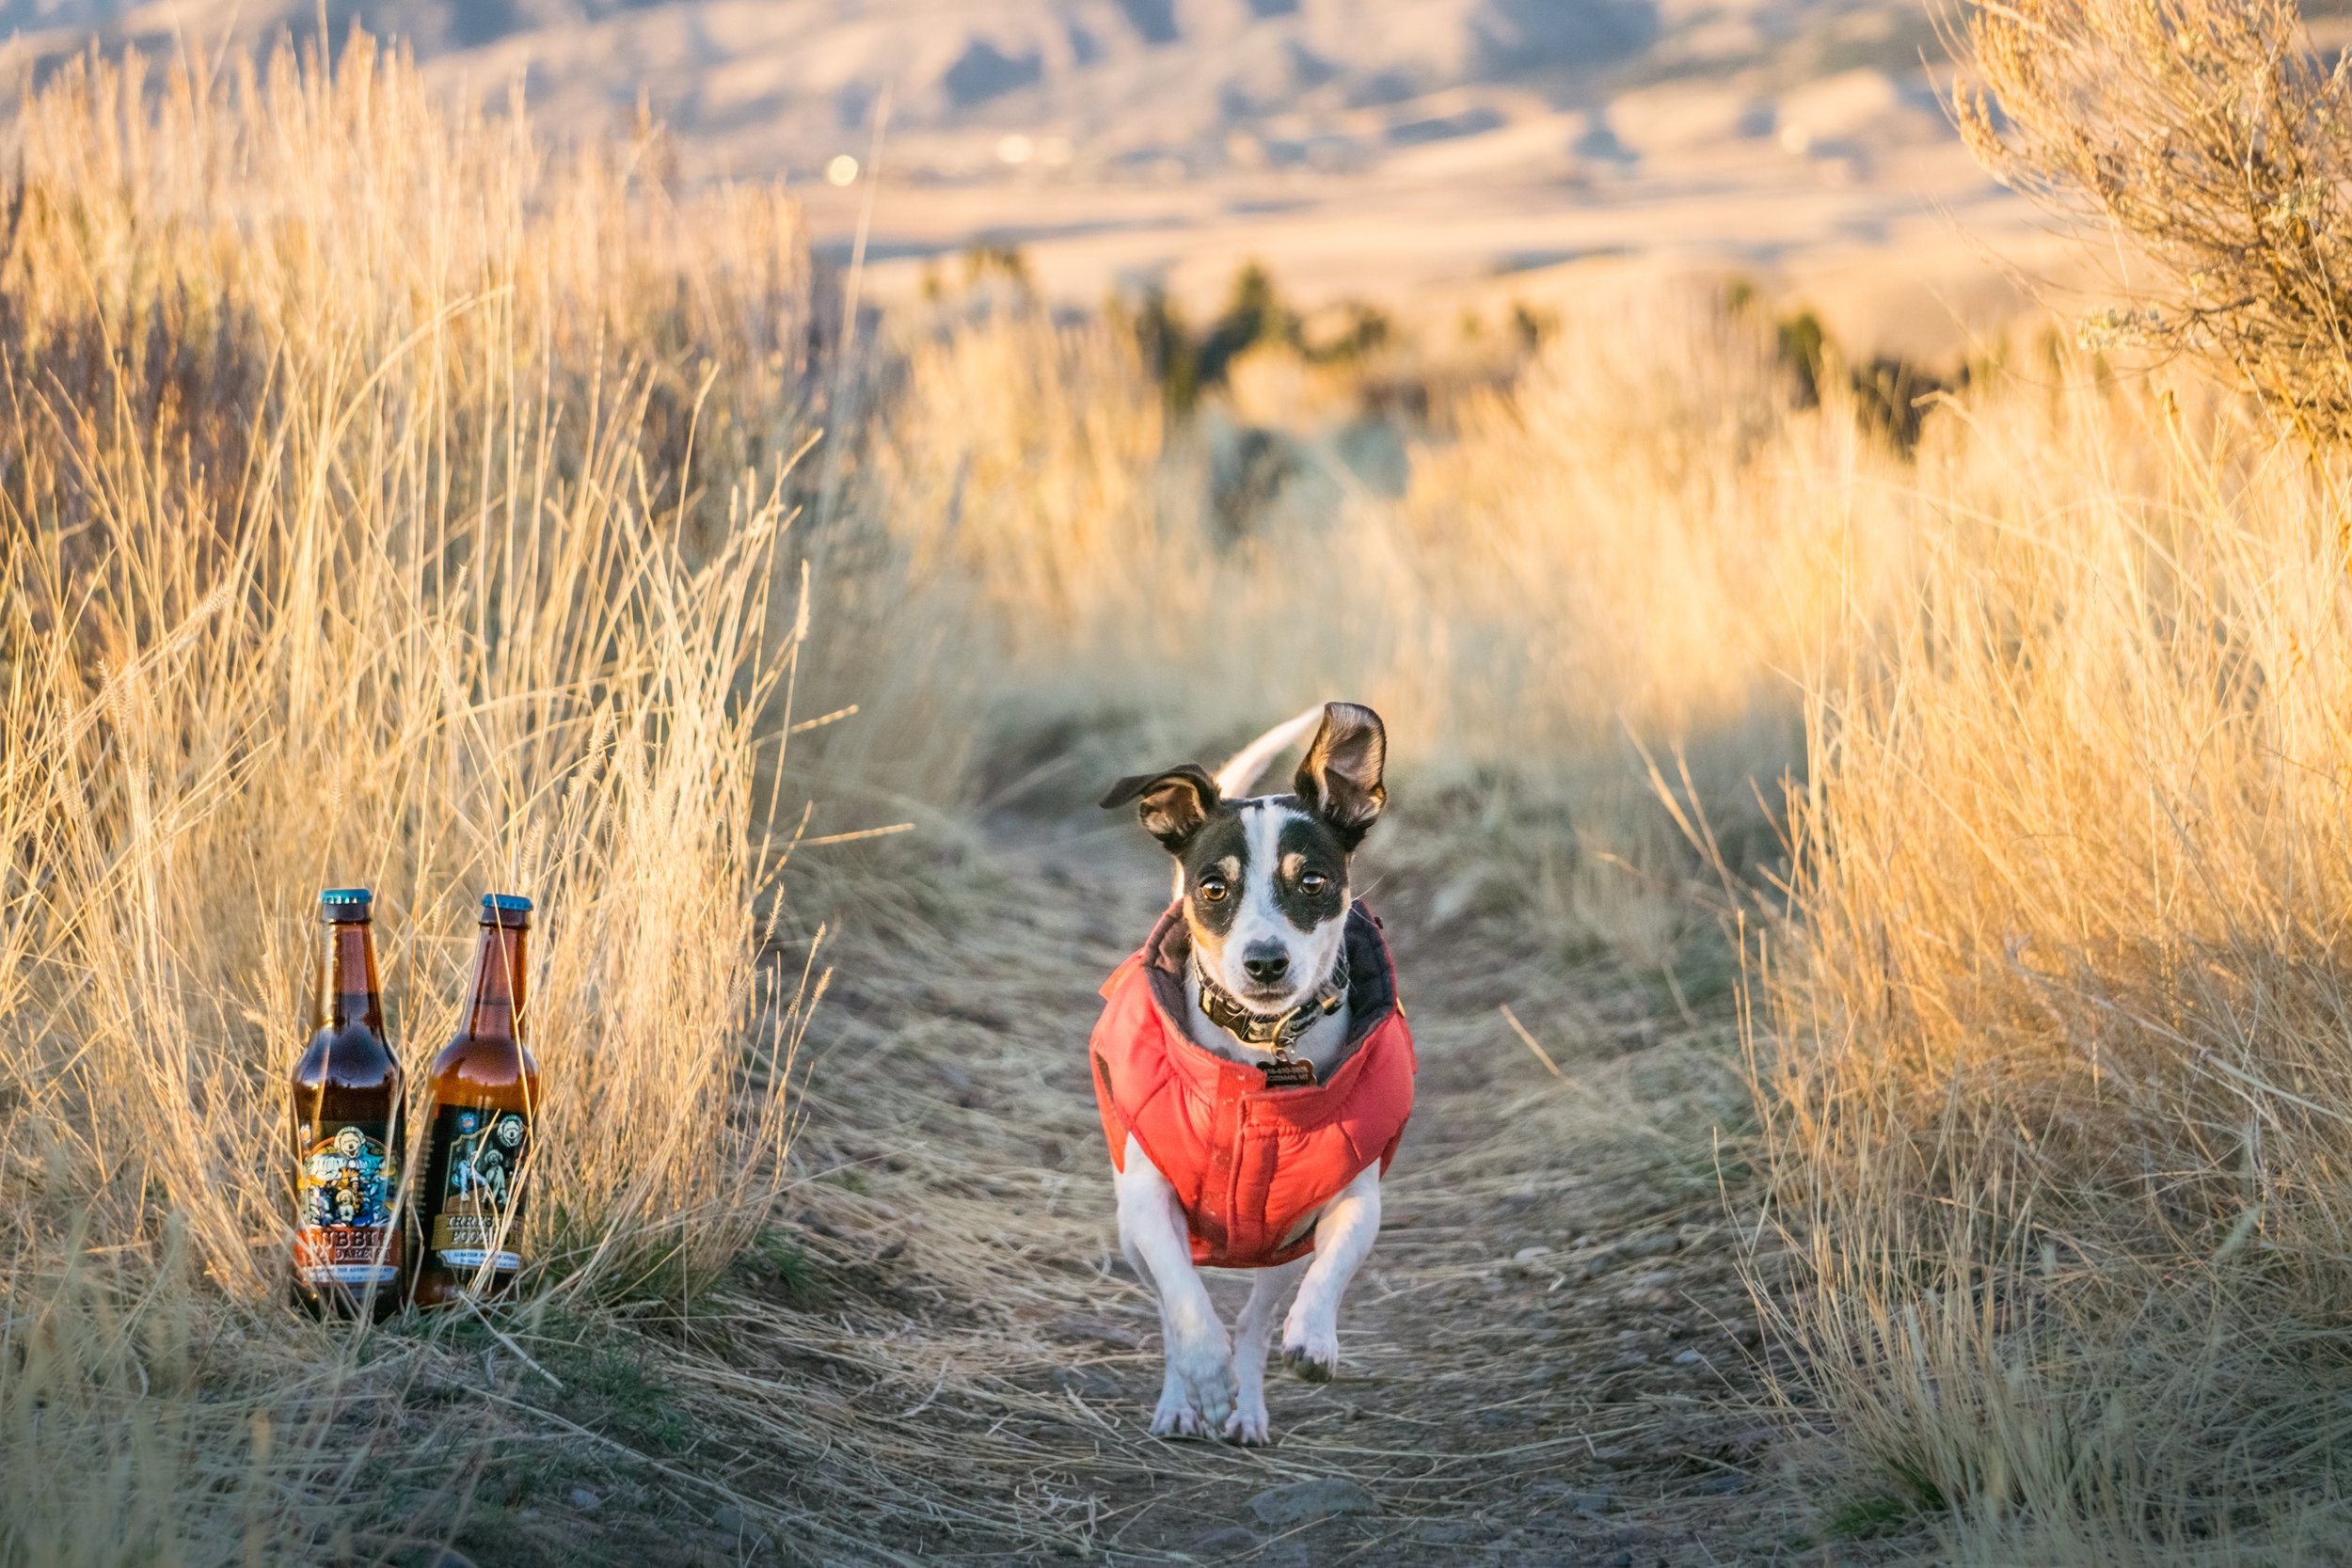 happy dog beer creates healthy drinks for your dog's active and adventurous lifestyle